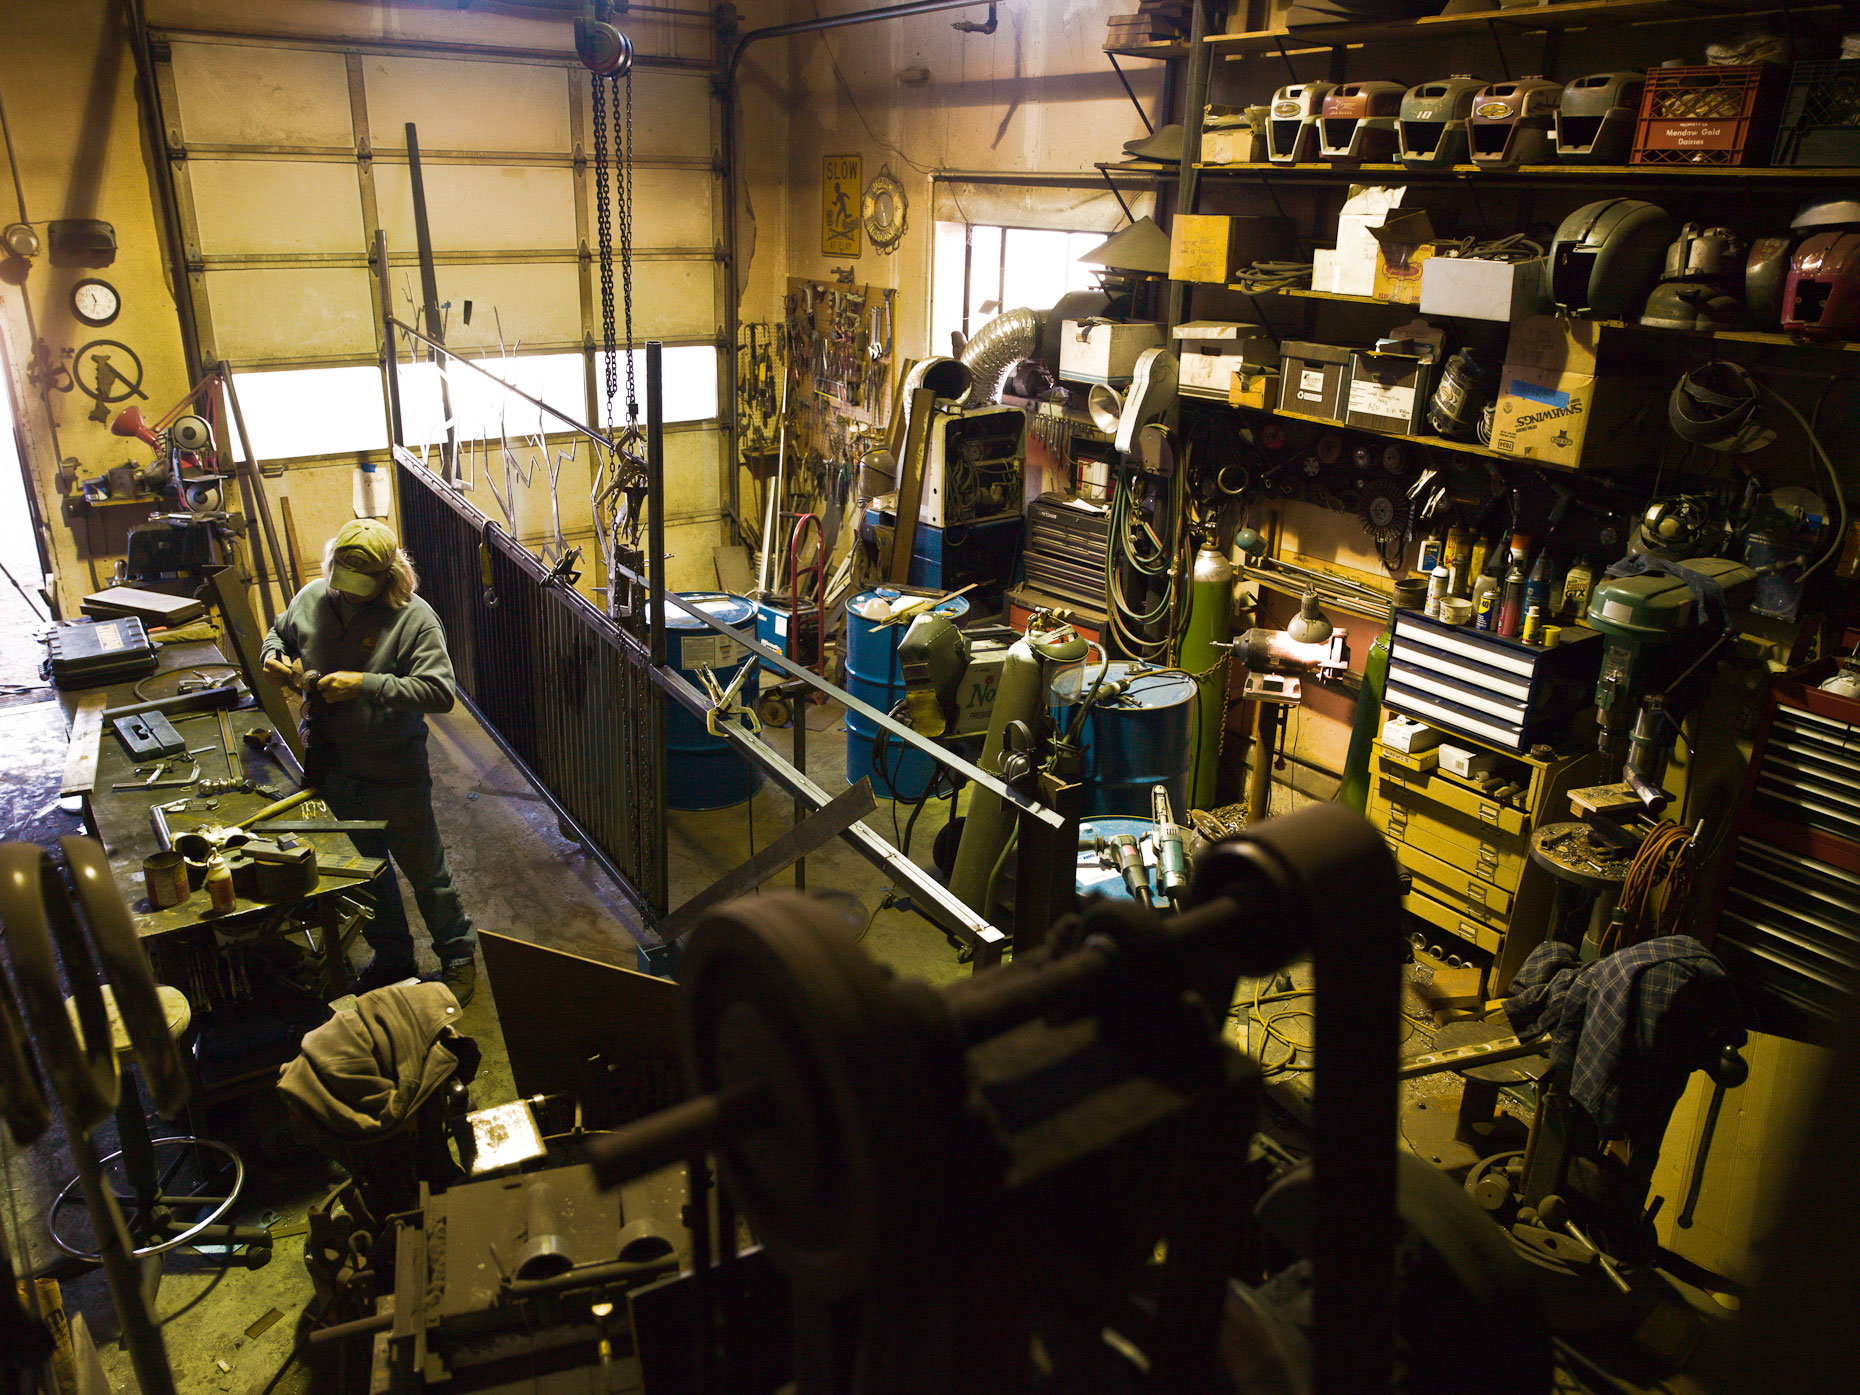 20101011_Metalwork_0031-Edit-2.jpg